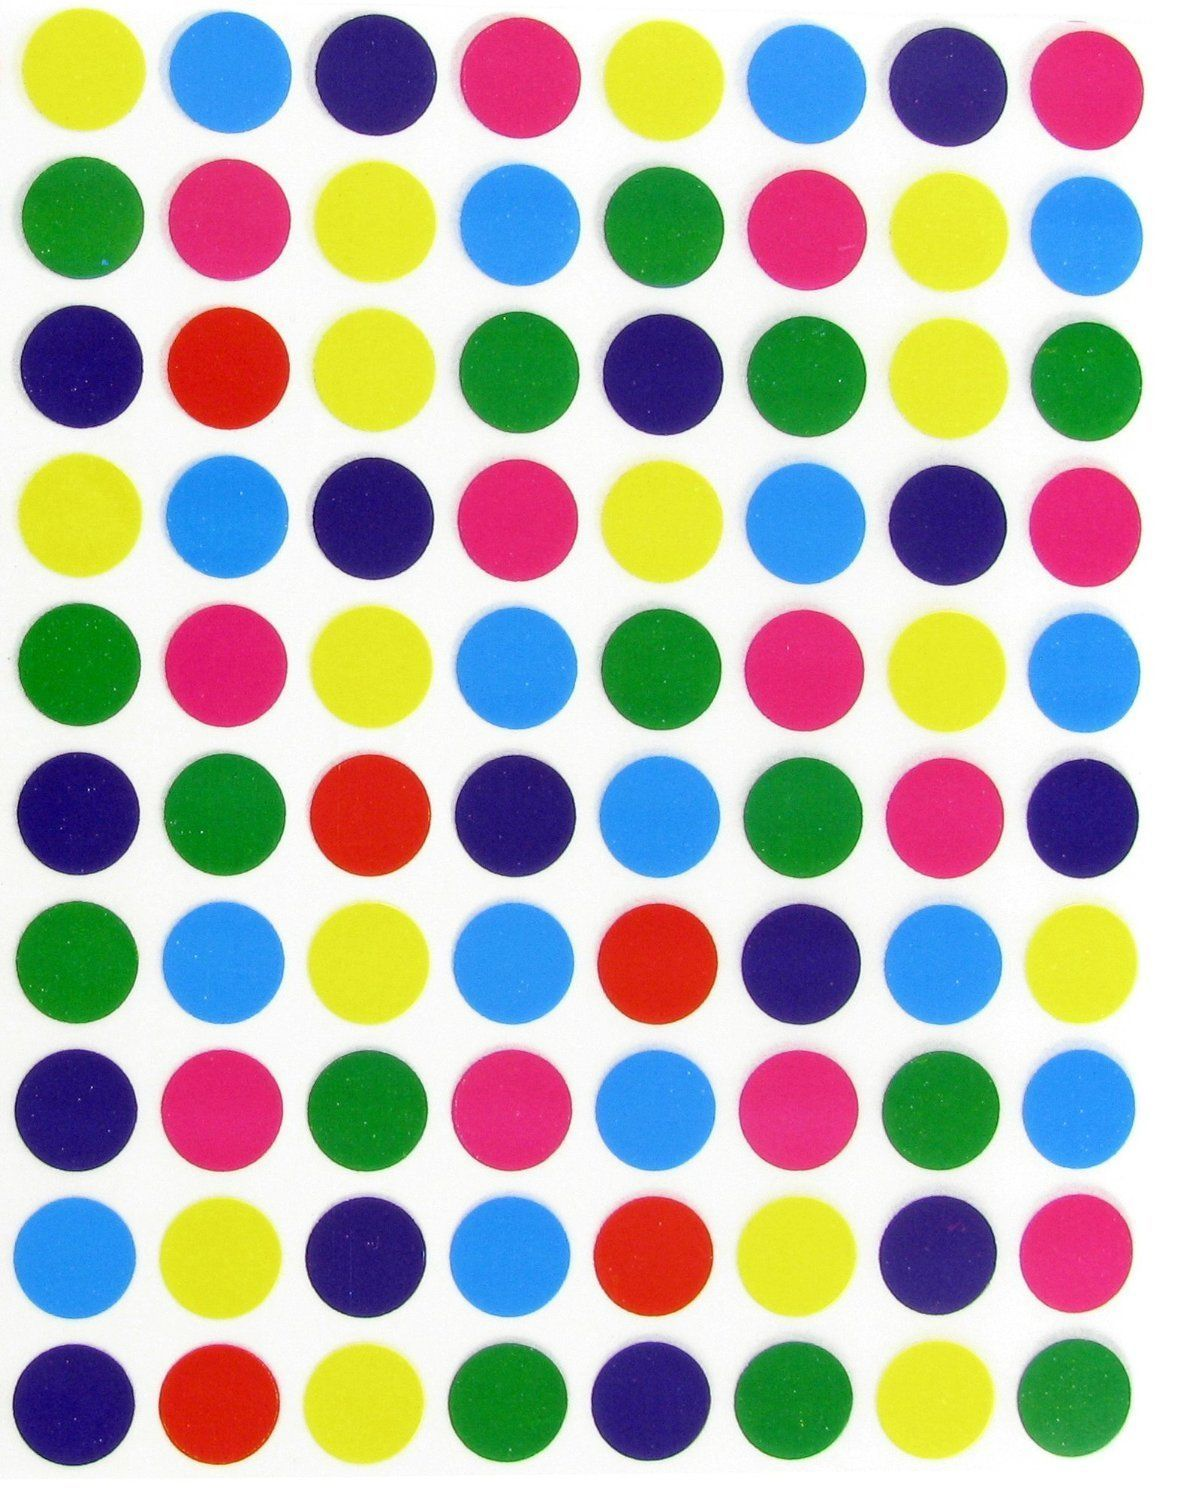 Circle Color Coded Dot Stickers 1//2 Inch Round Marking Labels Permanent Adhesive